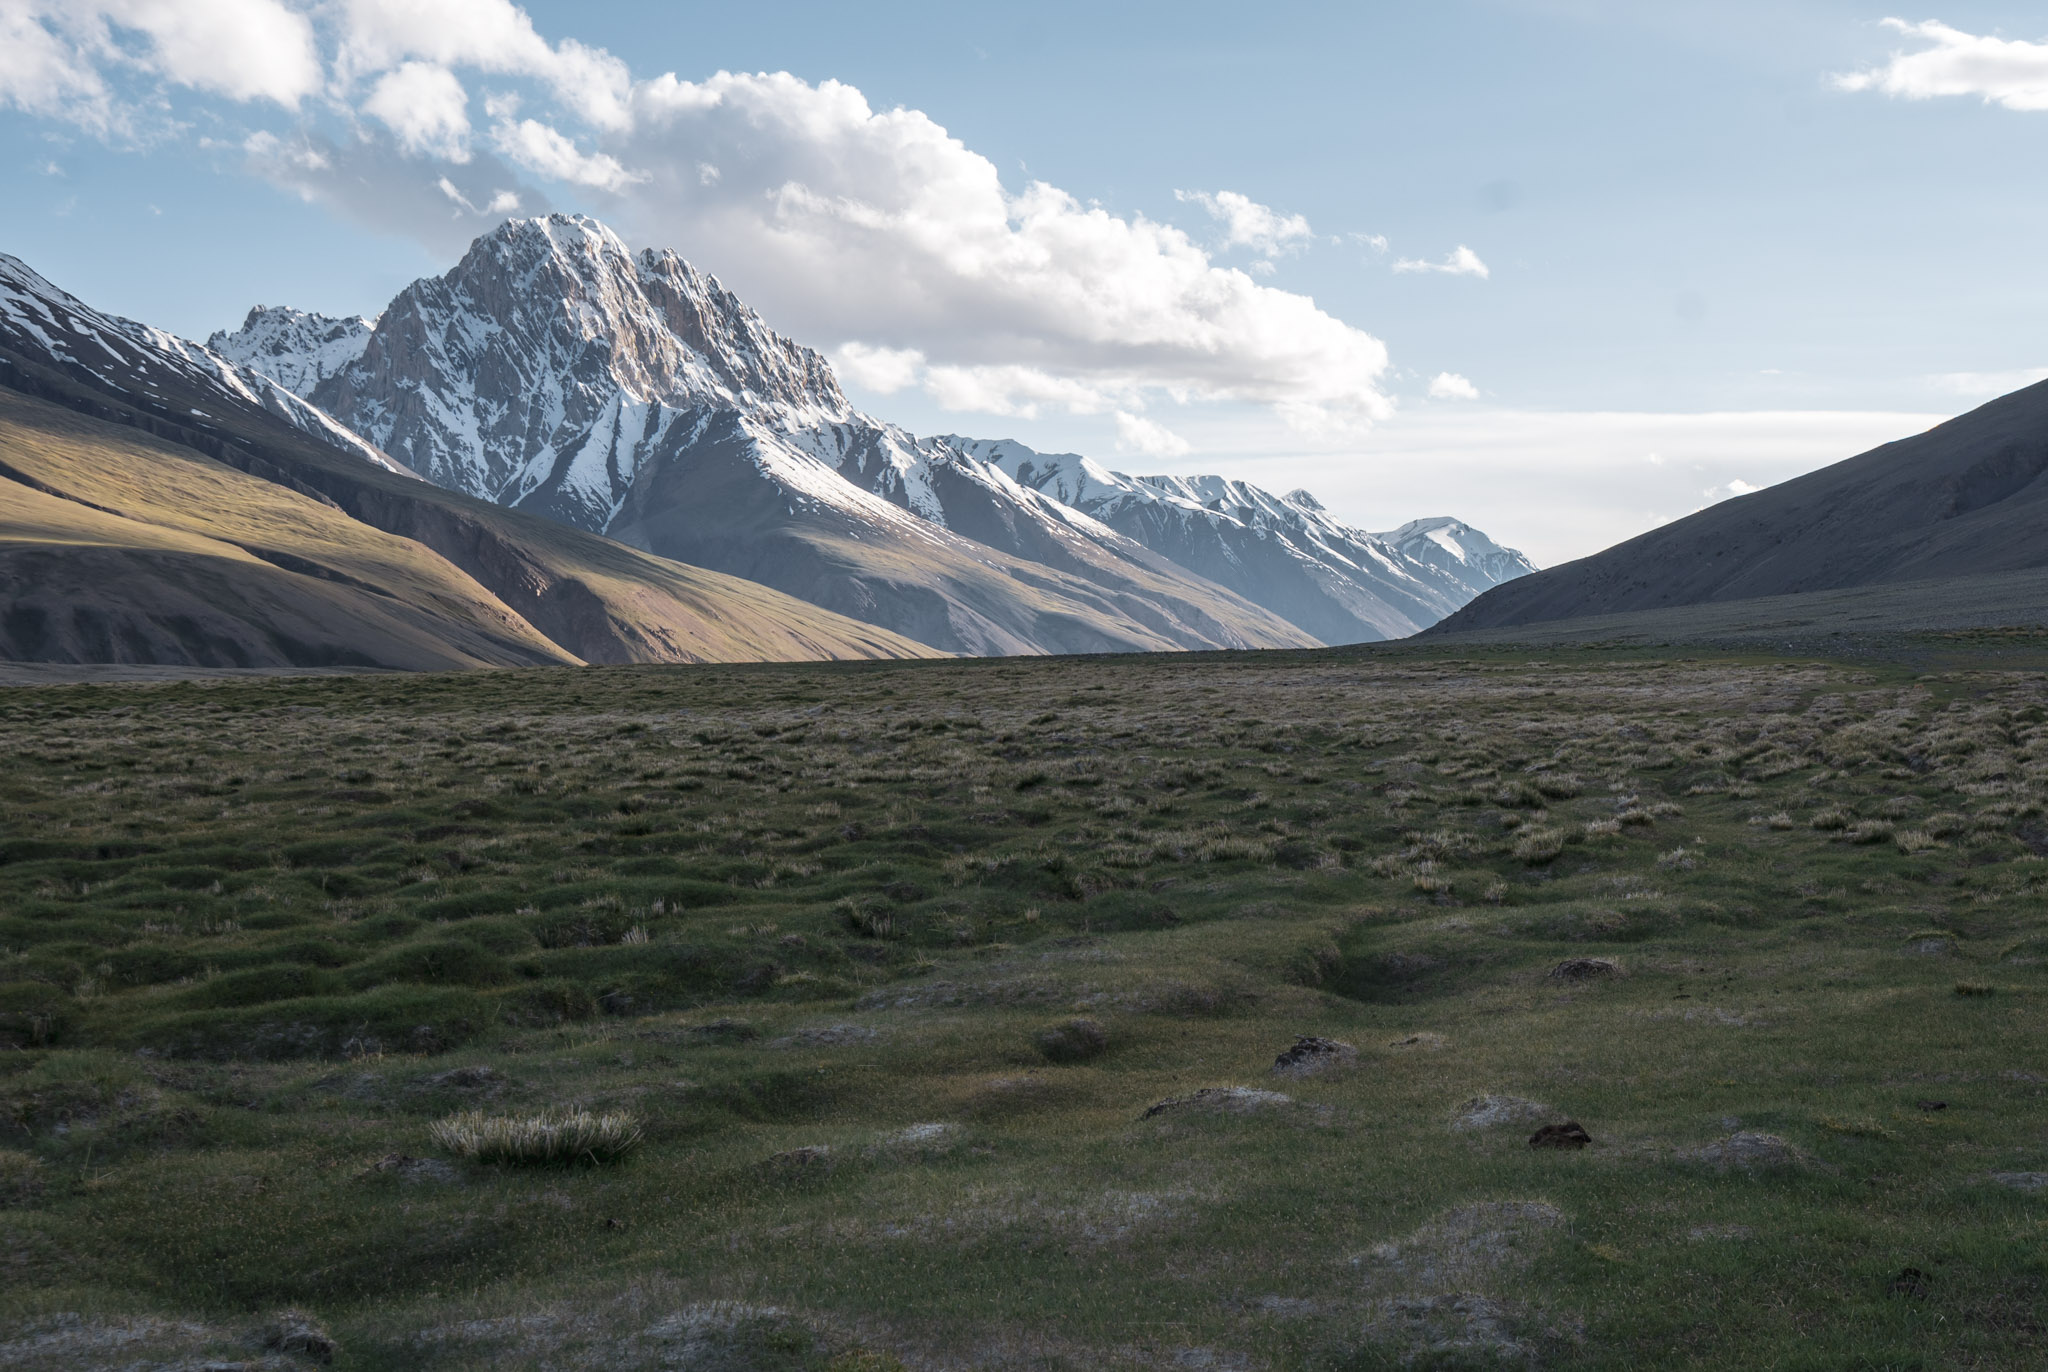 Wakhan Corridor trekking views